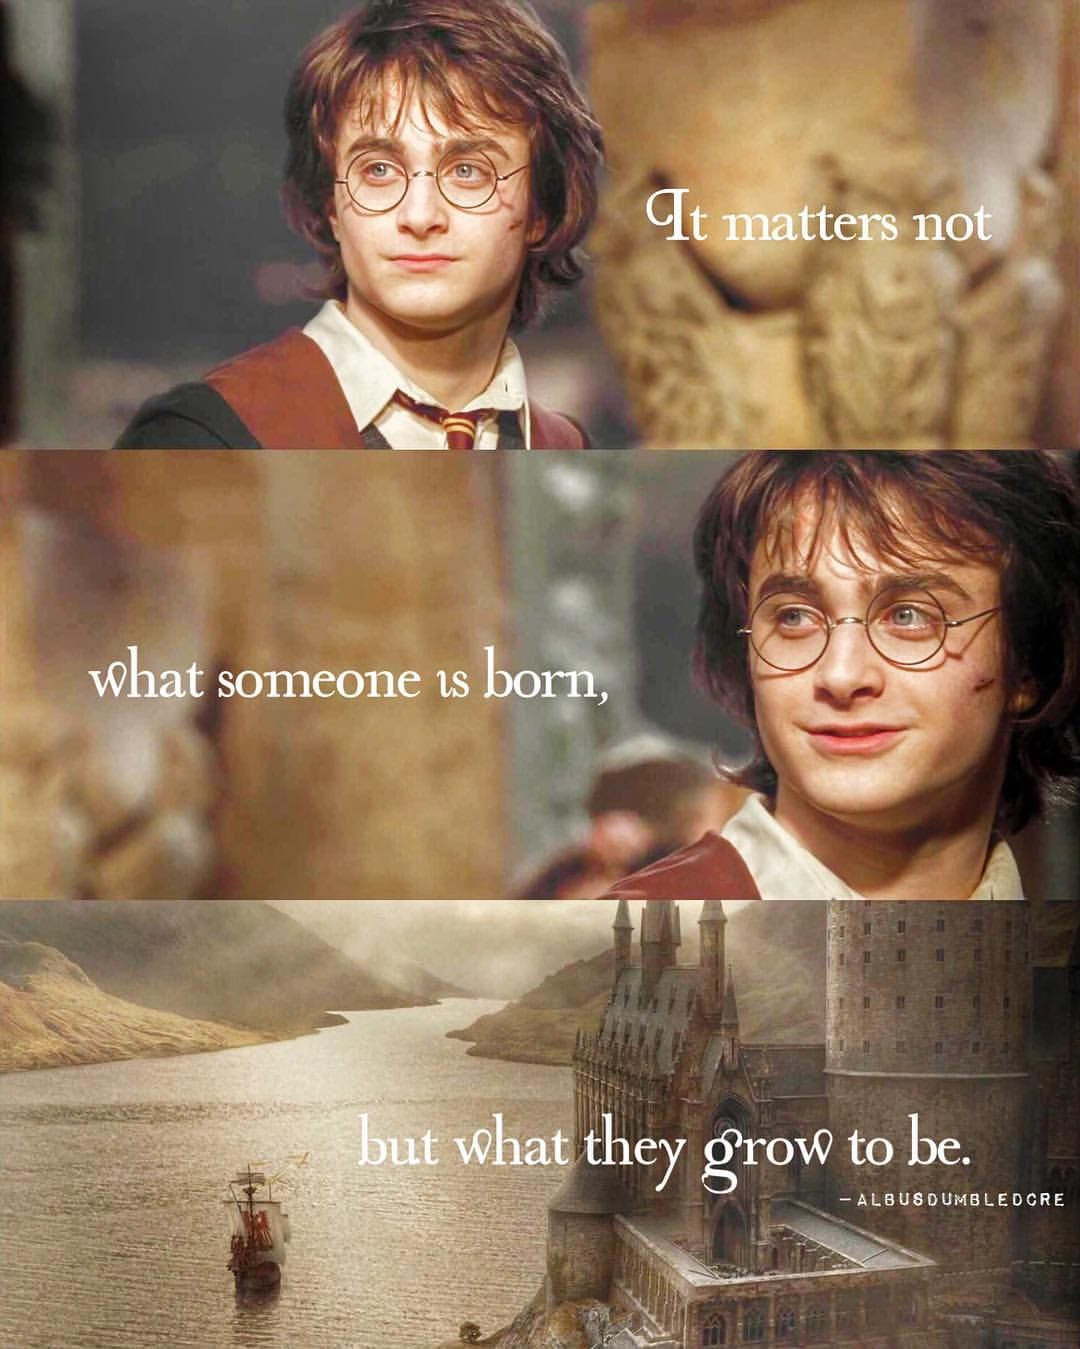 it does matter though because it effects who you grow up to be